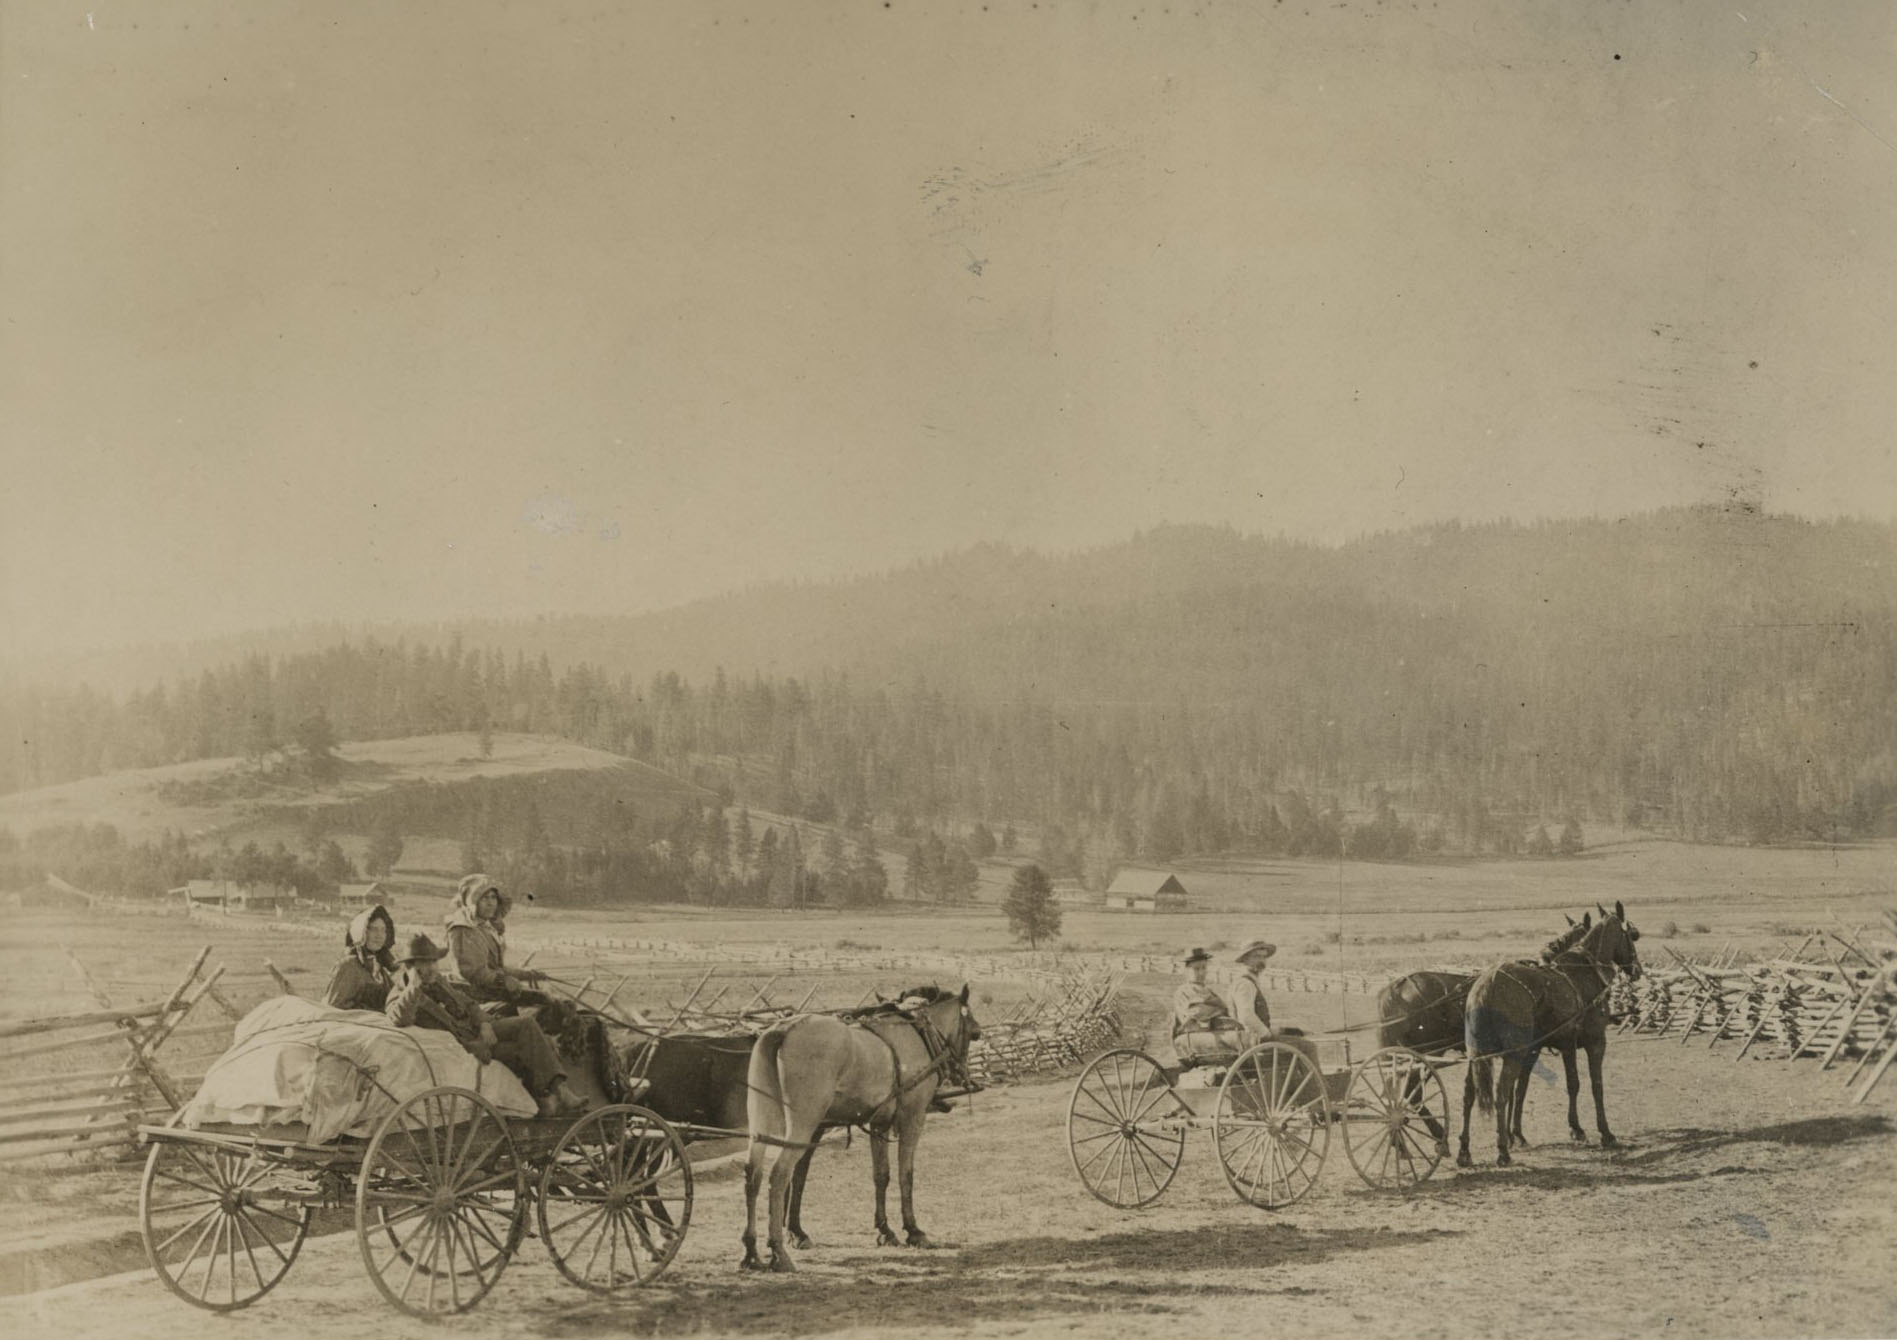 Travelers en route to Granite and the gold mines, 1896